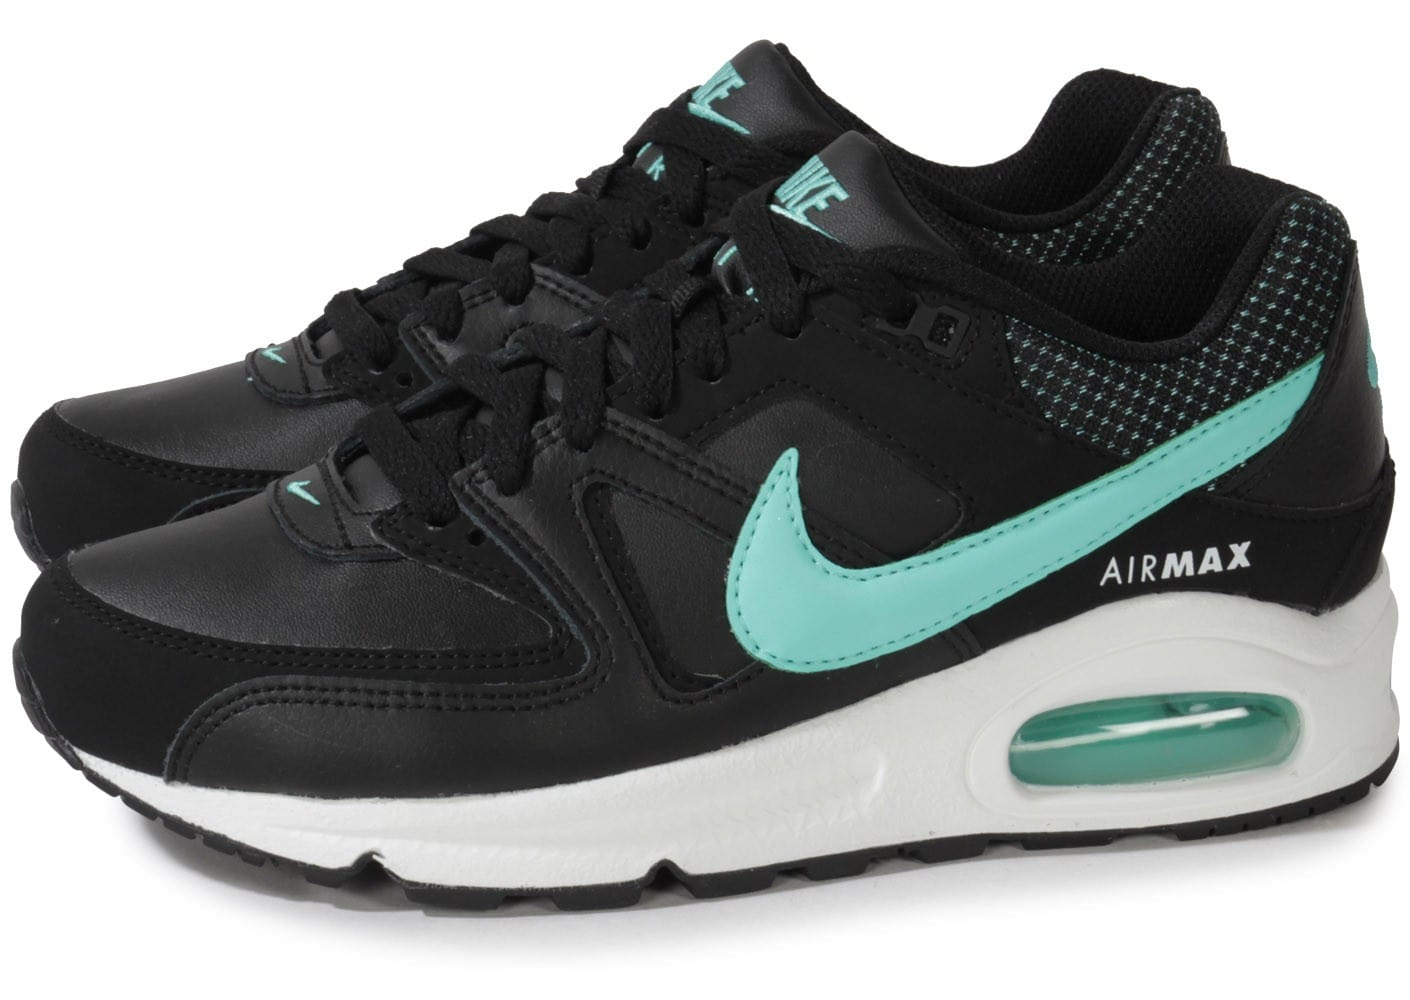 low priced bbd97 3b19d nike air max command cuir noir turquoise